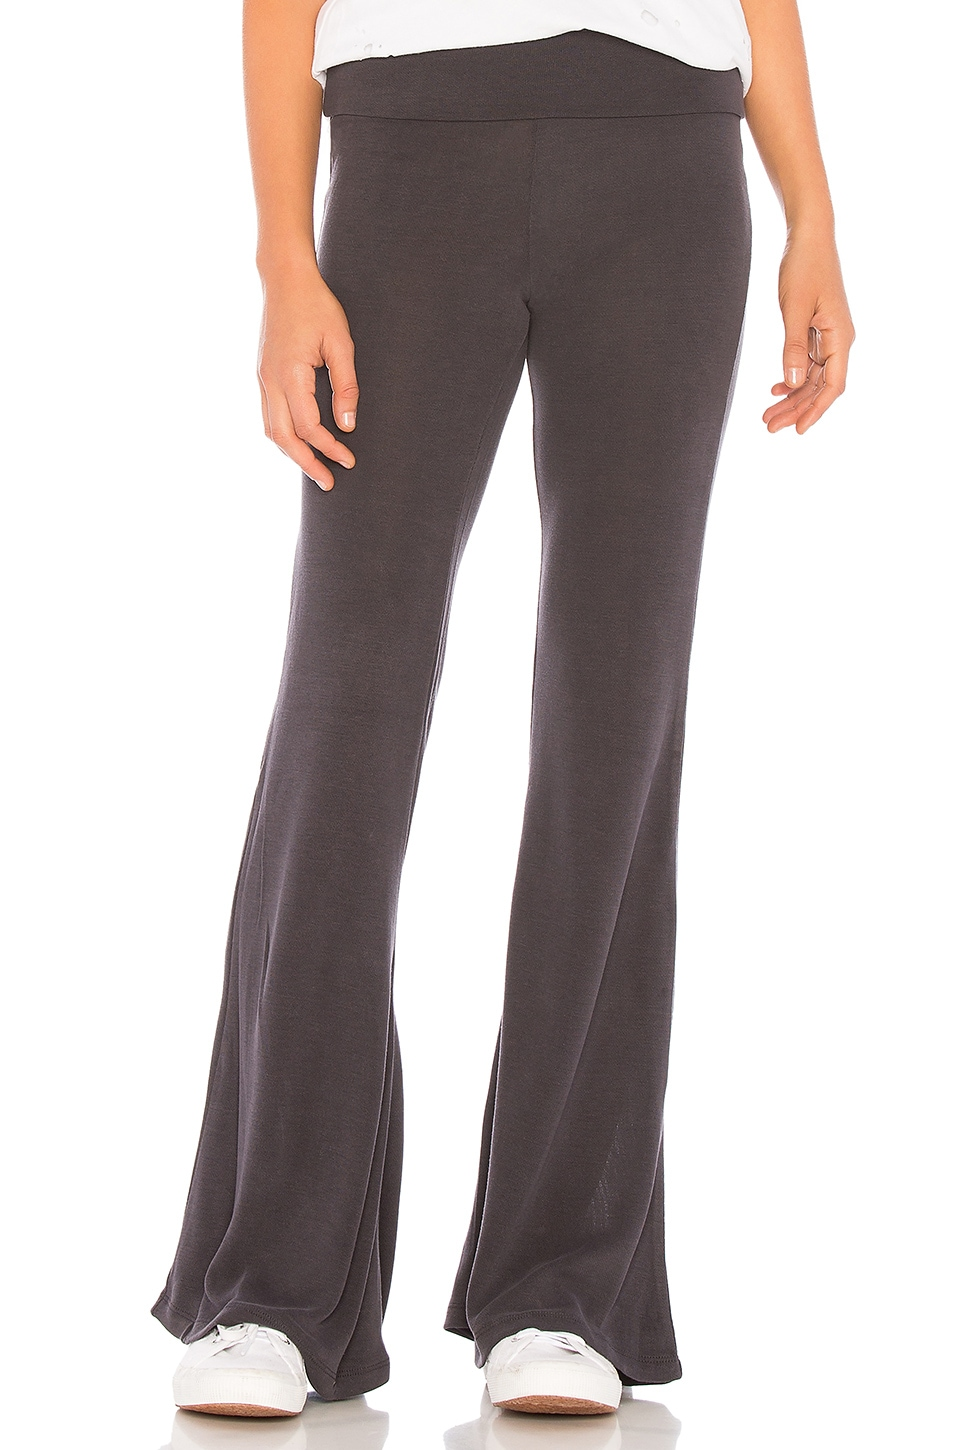 Free People X FP Movement Division Flare Pant in Black